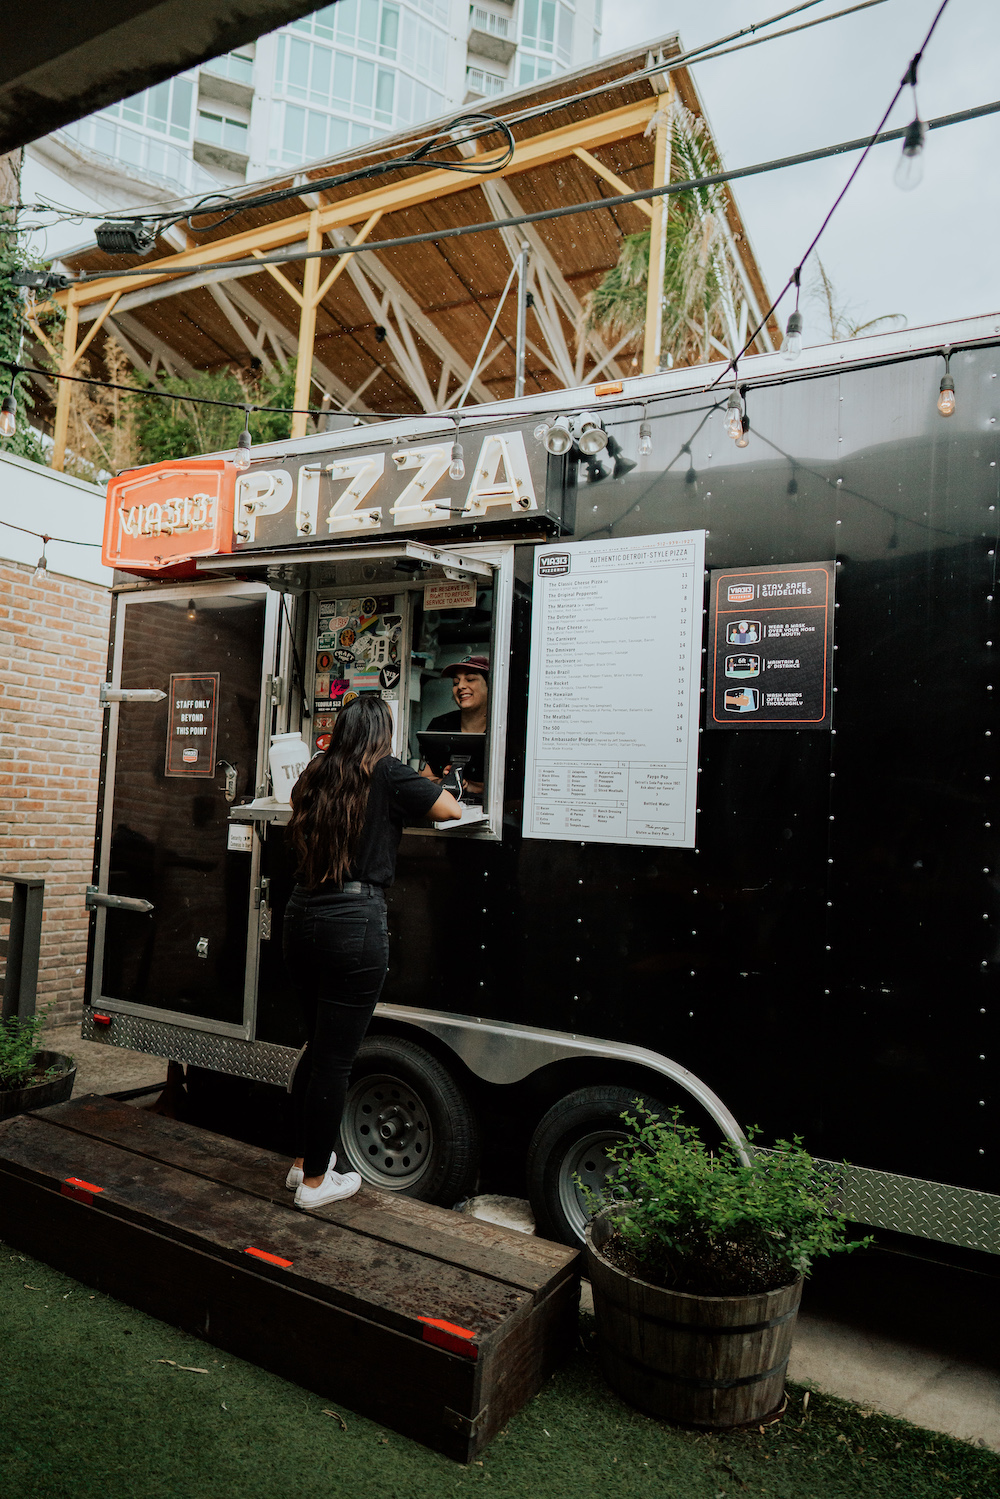 this photo shows a customer ordering from a Via 313 food trailer in Austin, Texas